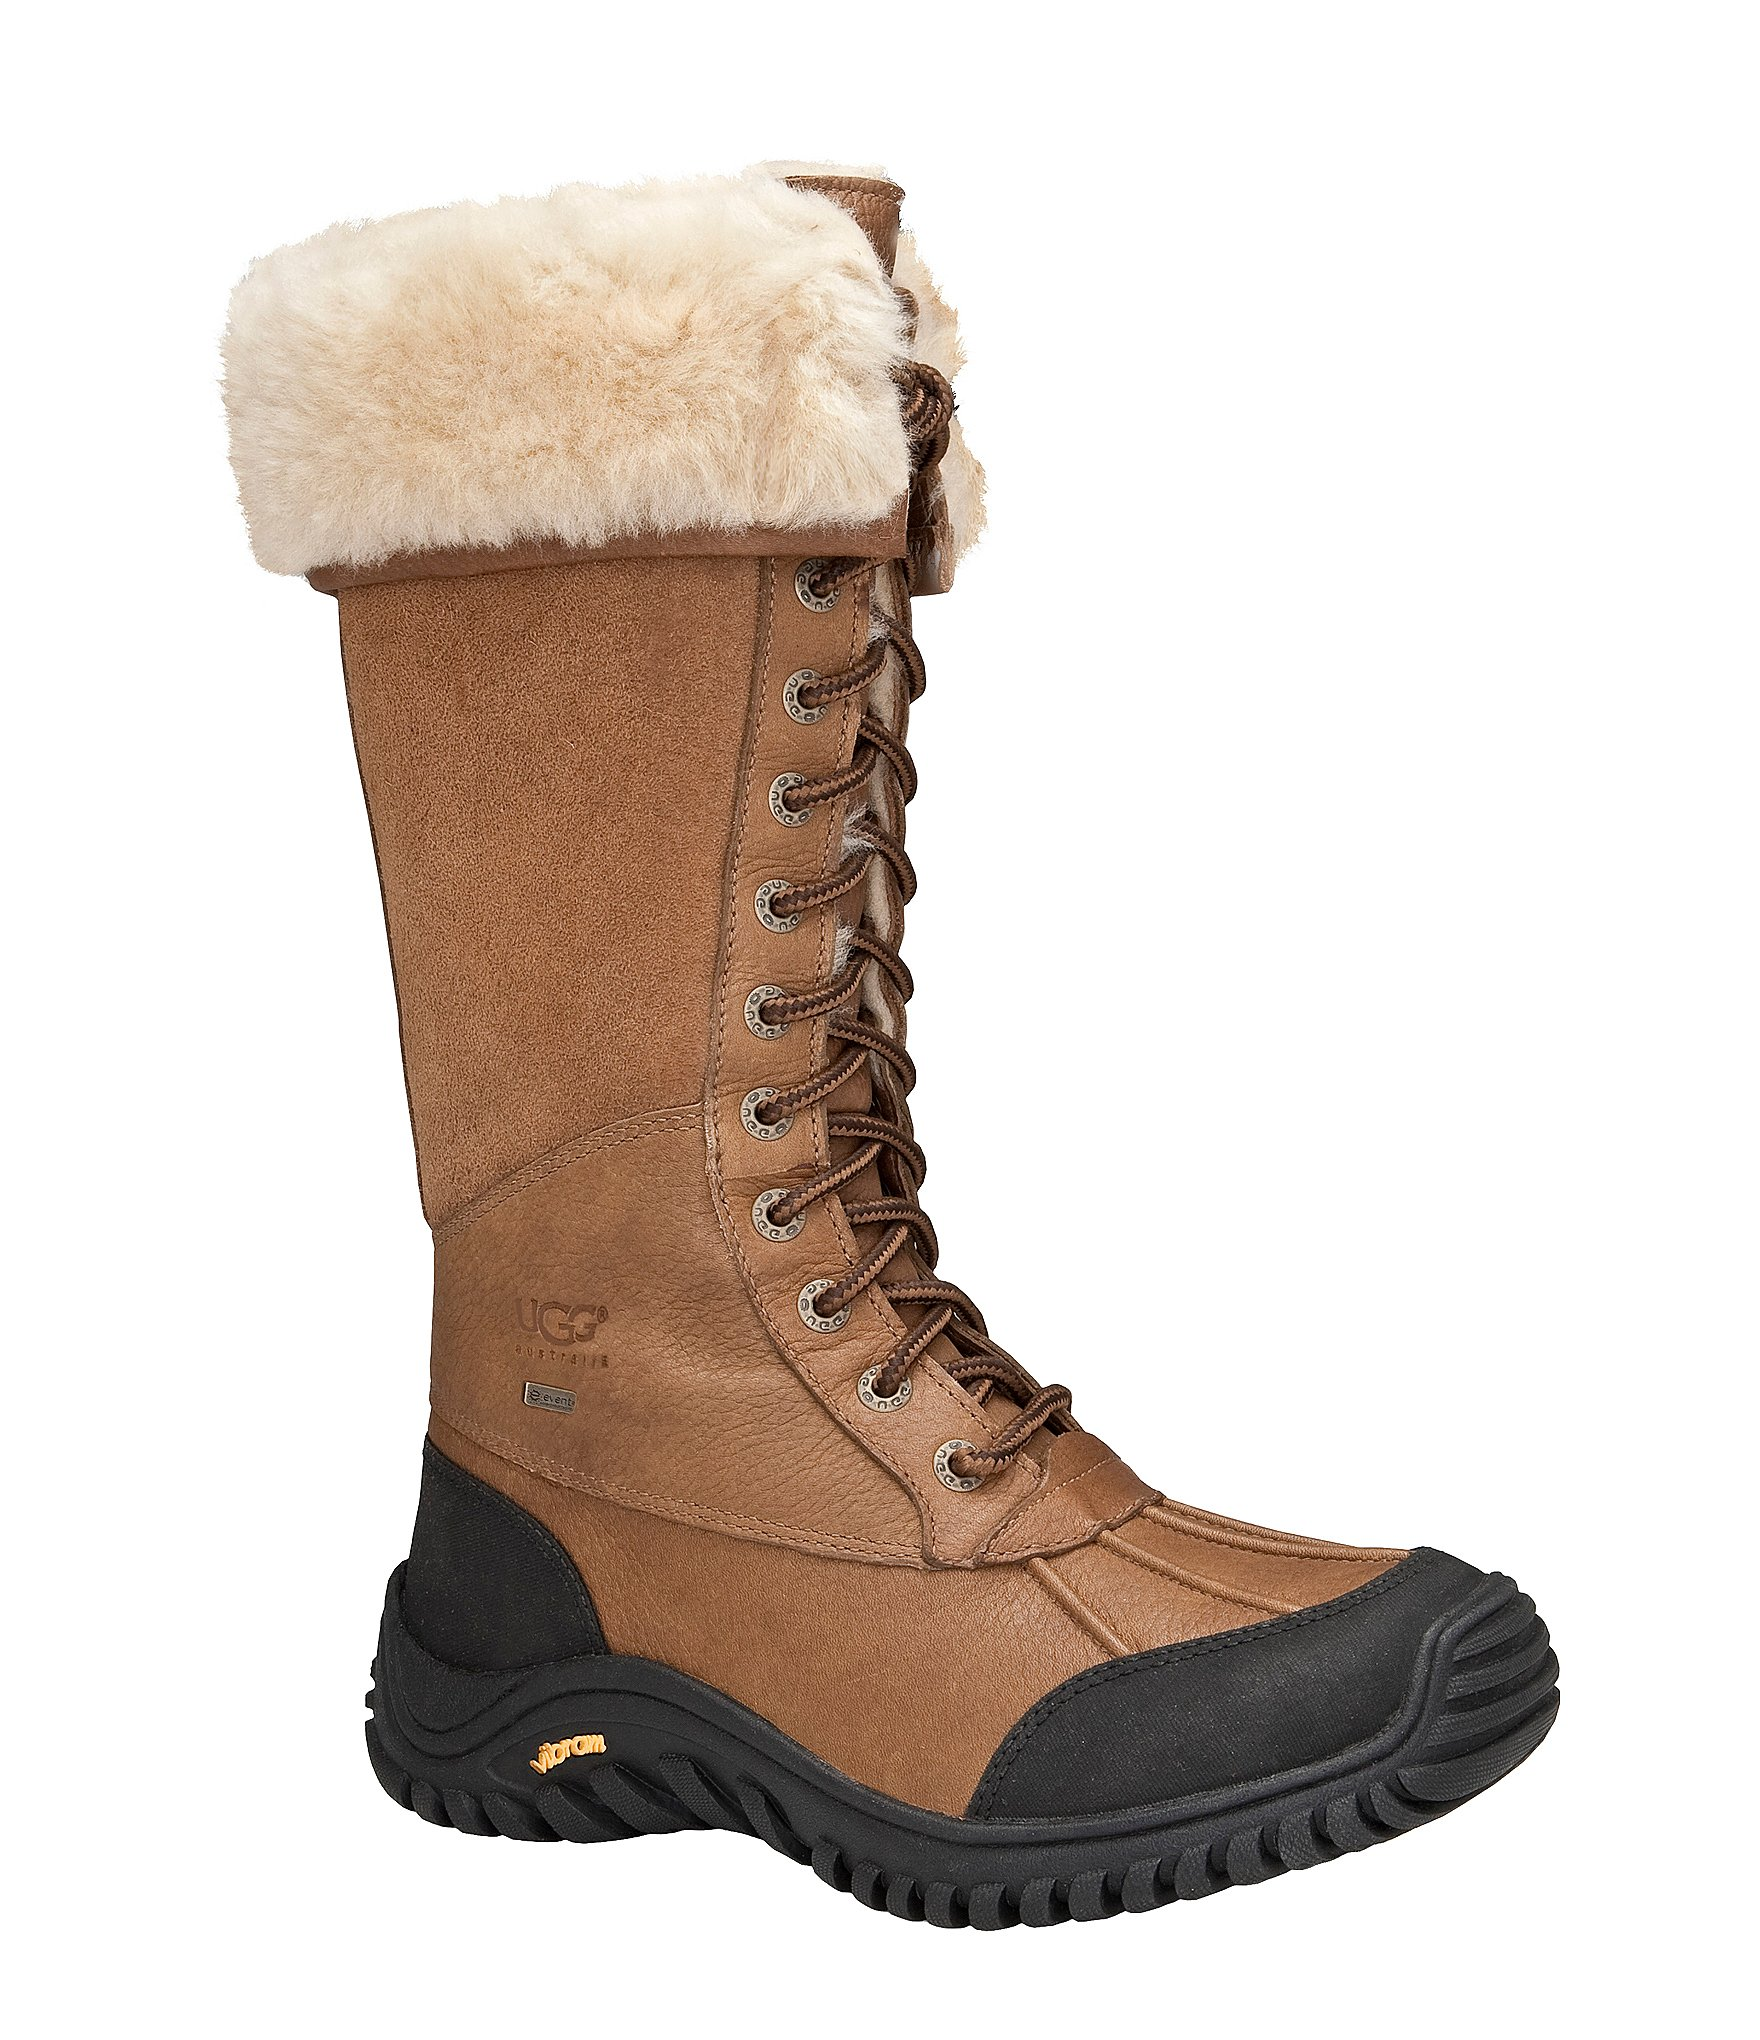 iantje.tk Insider on UGG While UGG Classic Boots are among the most widely recognized - and coveted - pairs in the world, there's much more to this loved label. Women, men, and kids clamor for the refined comfort that only UGG delivers.